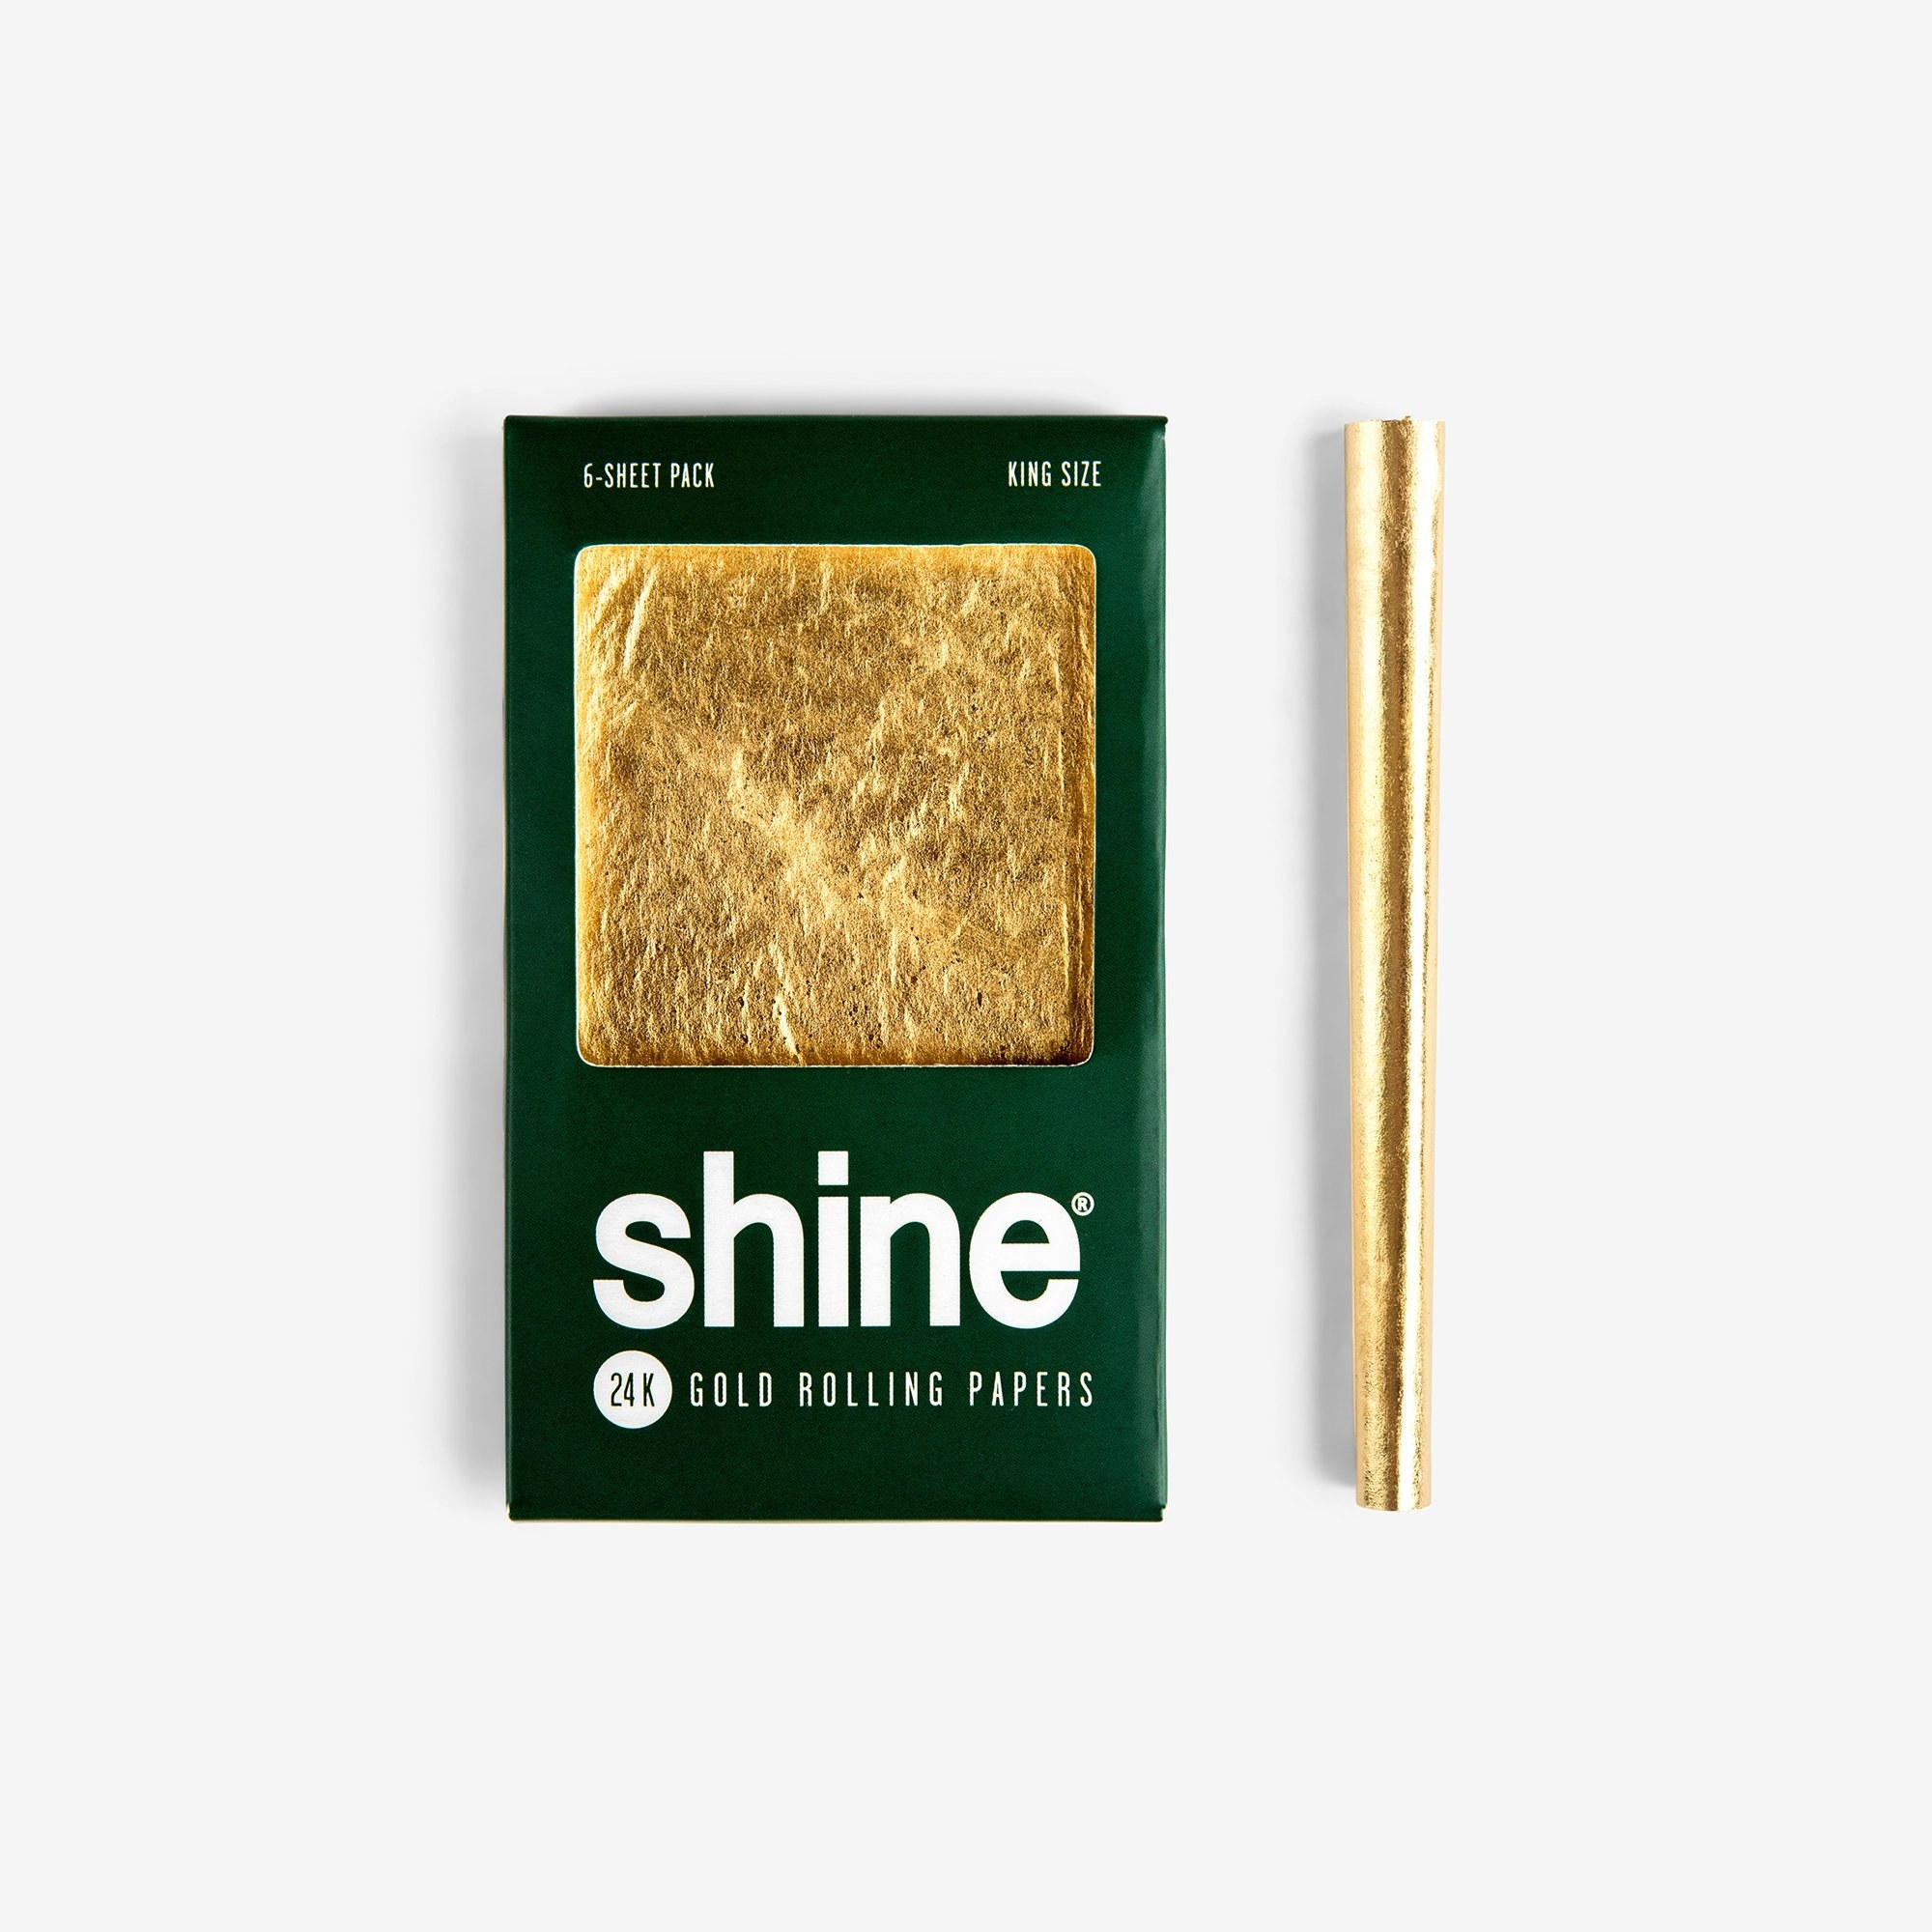 the gold rolling papers